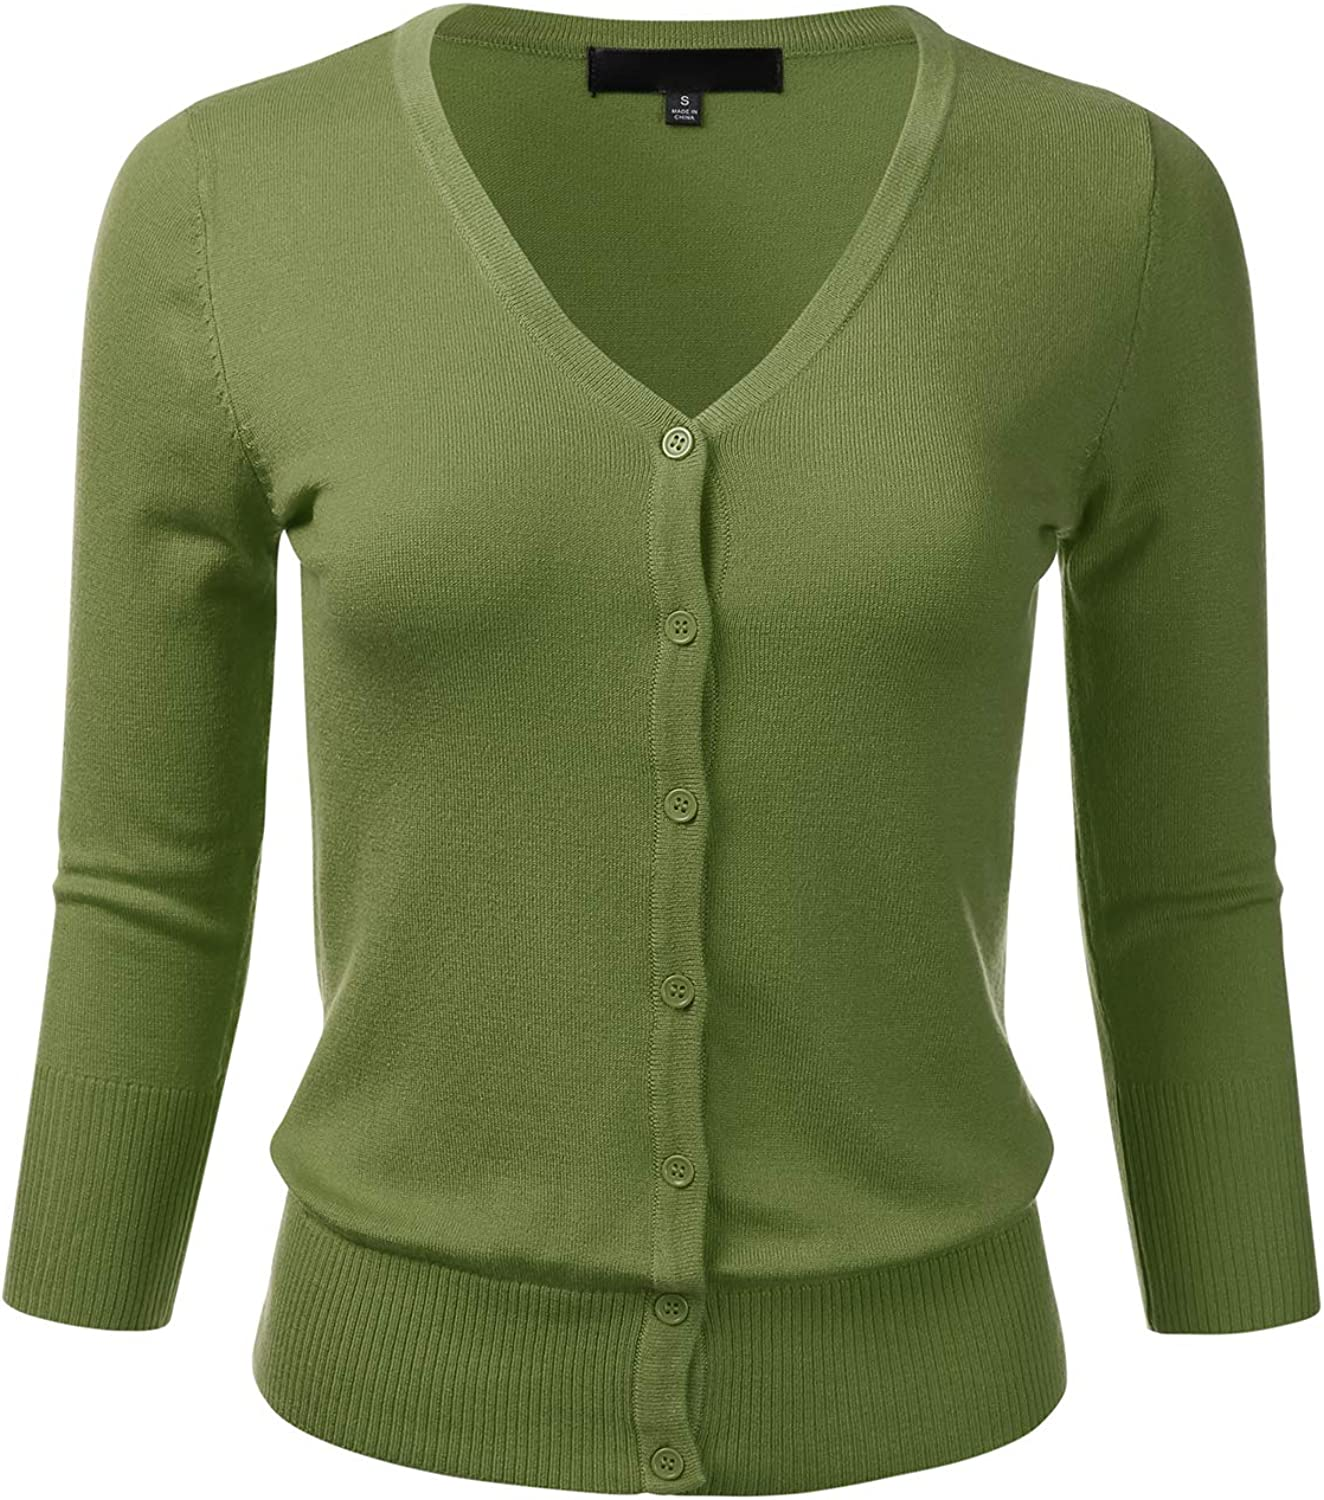 FLORIA Women's Button Down 3/4 Sleeve V-Neck Stretch Knit Cardigan Sweater (S-3X)